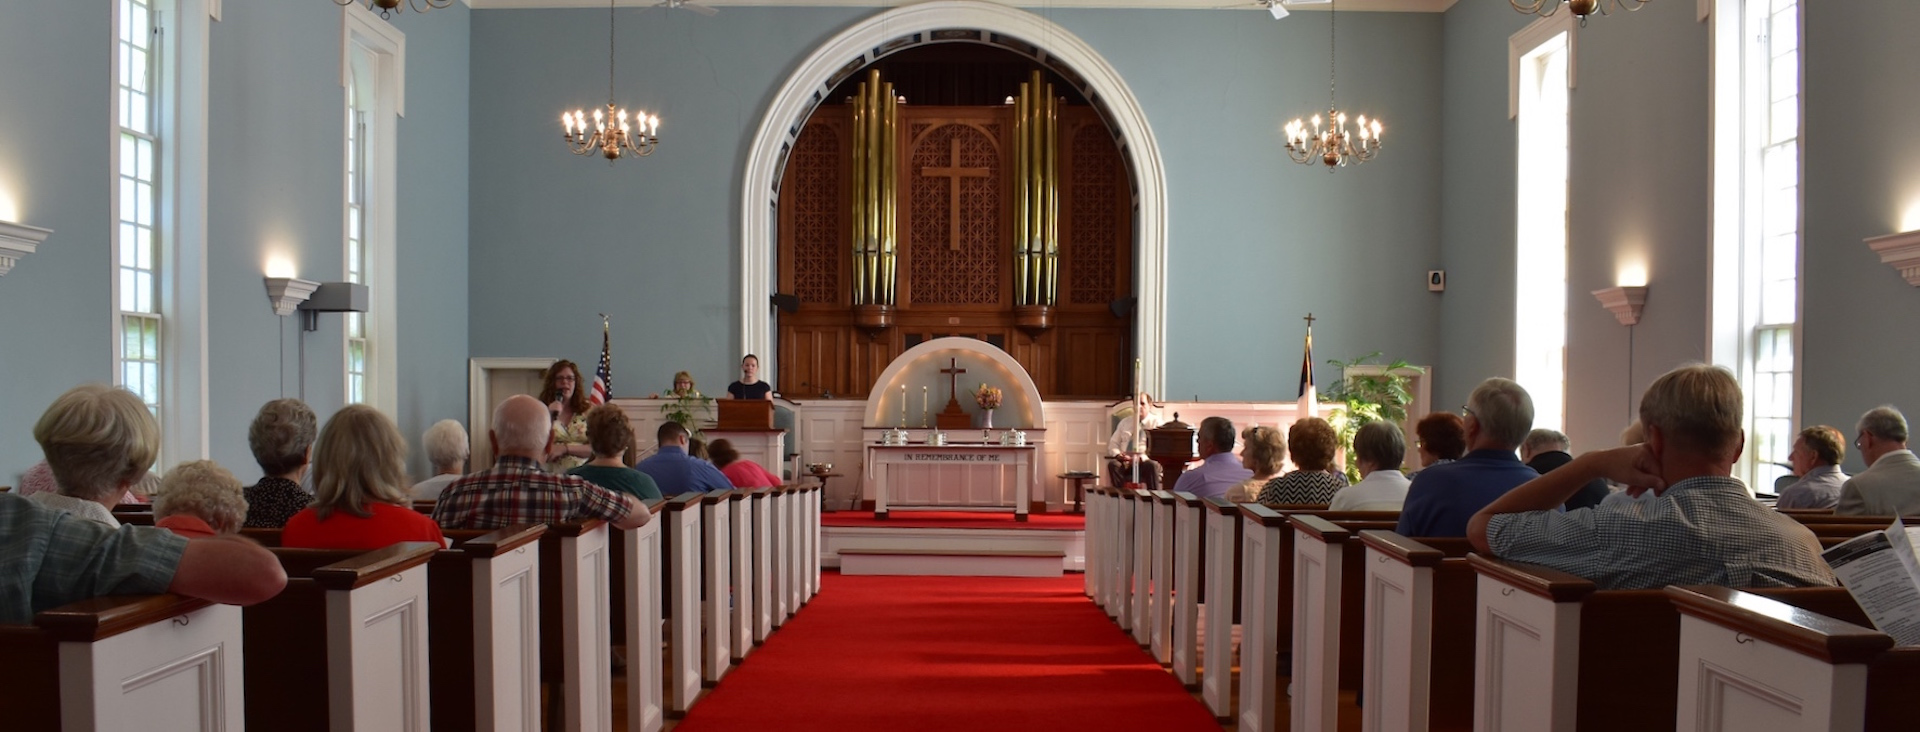 1528907897_First Congregational Church - Interior Banner 1 Final.jpg